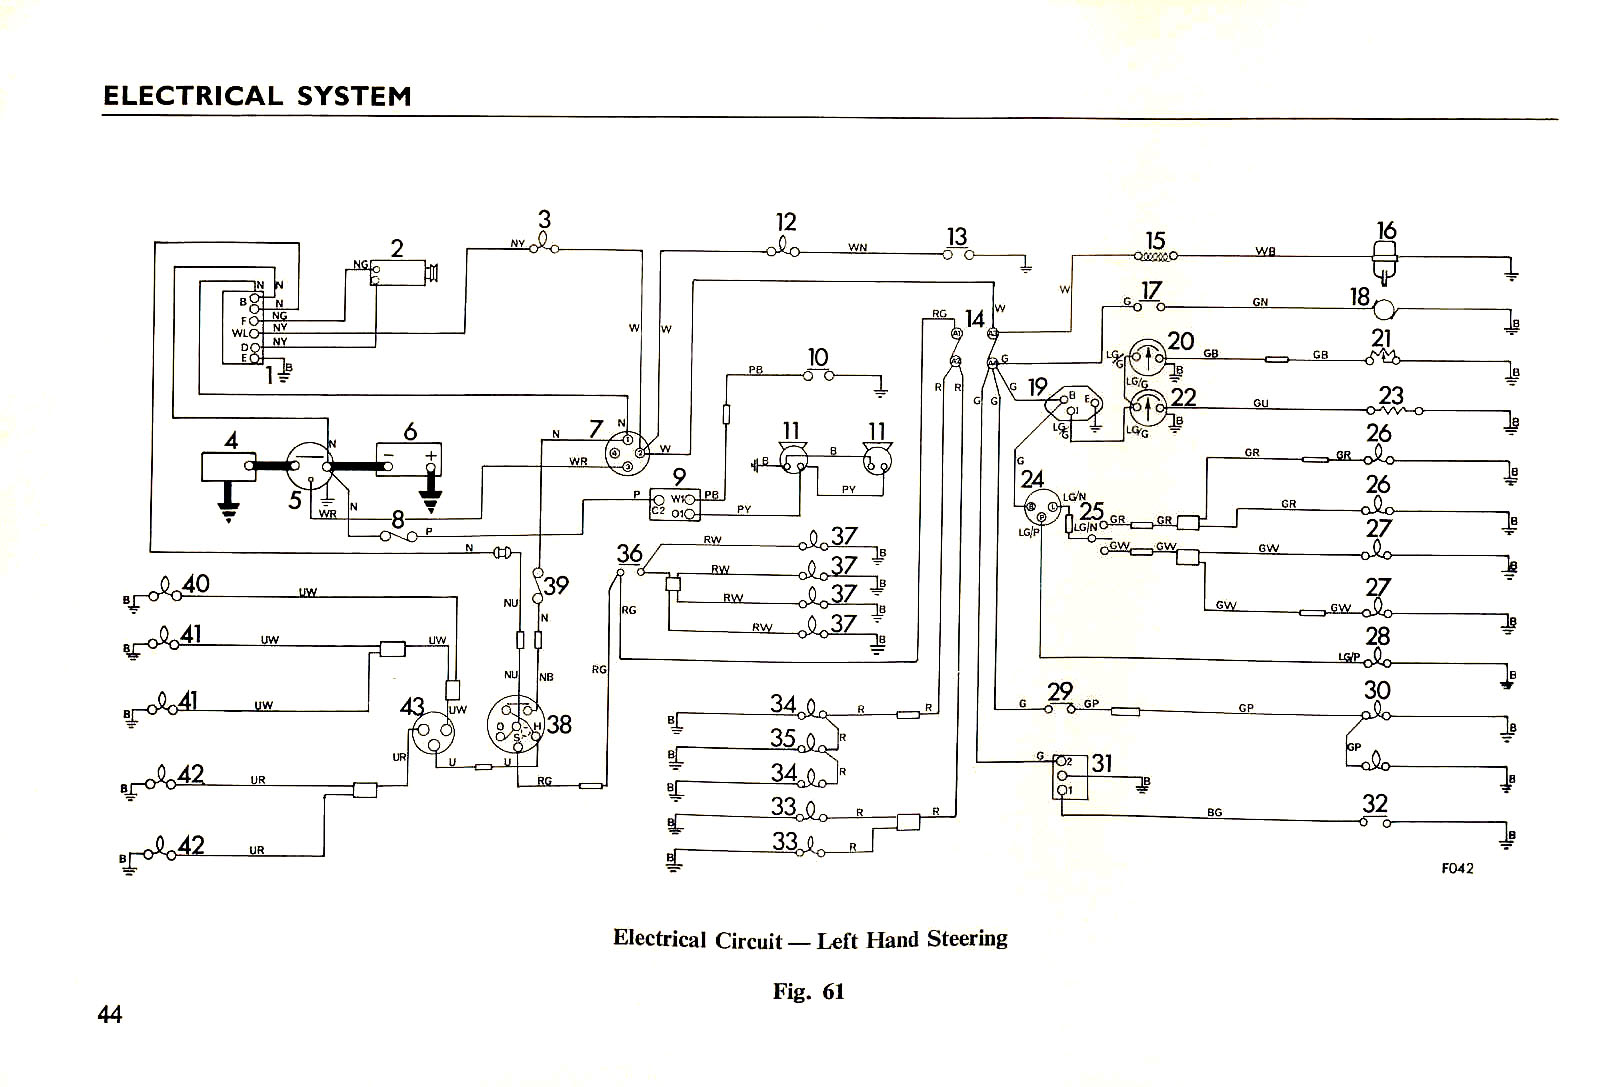 1970 Triumph Electrical Diagram Diy Enthusiasts Wiring Diagrams Gt6 Somurich Com Cafe Racer Motorcycles